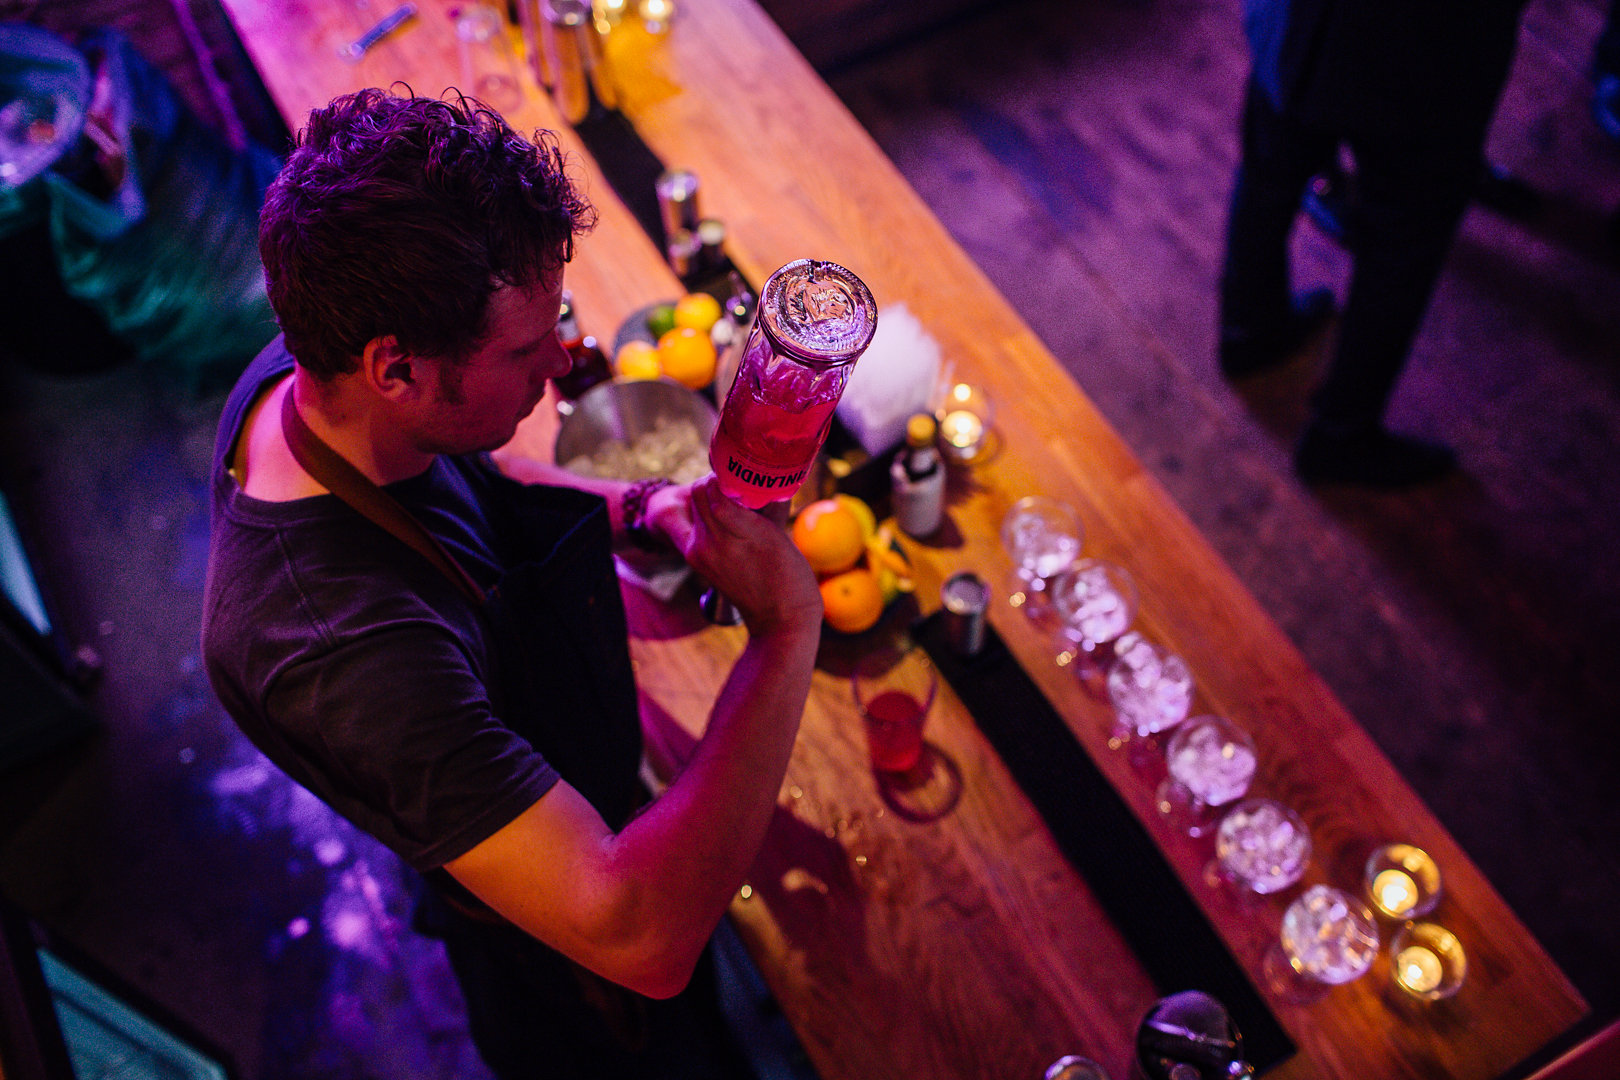 Event team, Event management, Christmas 2017, Christmas parties, Party planning, waiters, waitresses, Bar team, bartenders, Food & drink, London Christmas